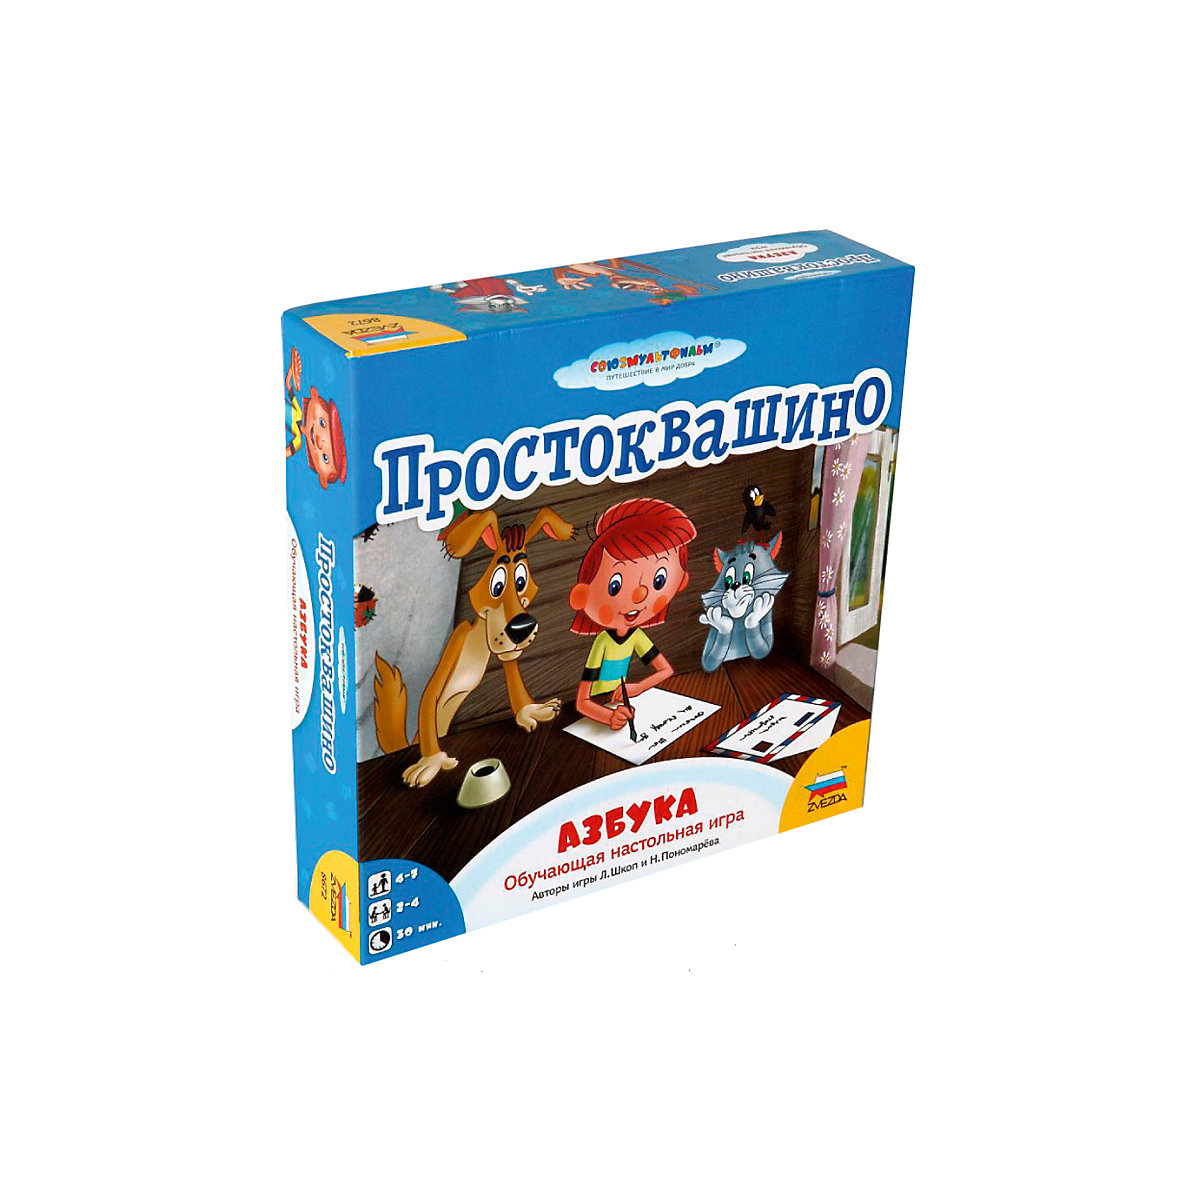 Zvezda Party Games 8988628 board game fine motor skills for the company developing play girl boy friends hasbro gaming party games 8376303 board game fine motor skills for the company developing play girl boy friends